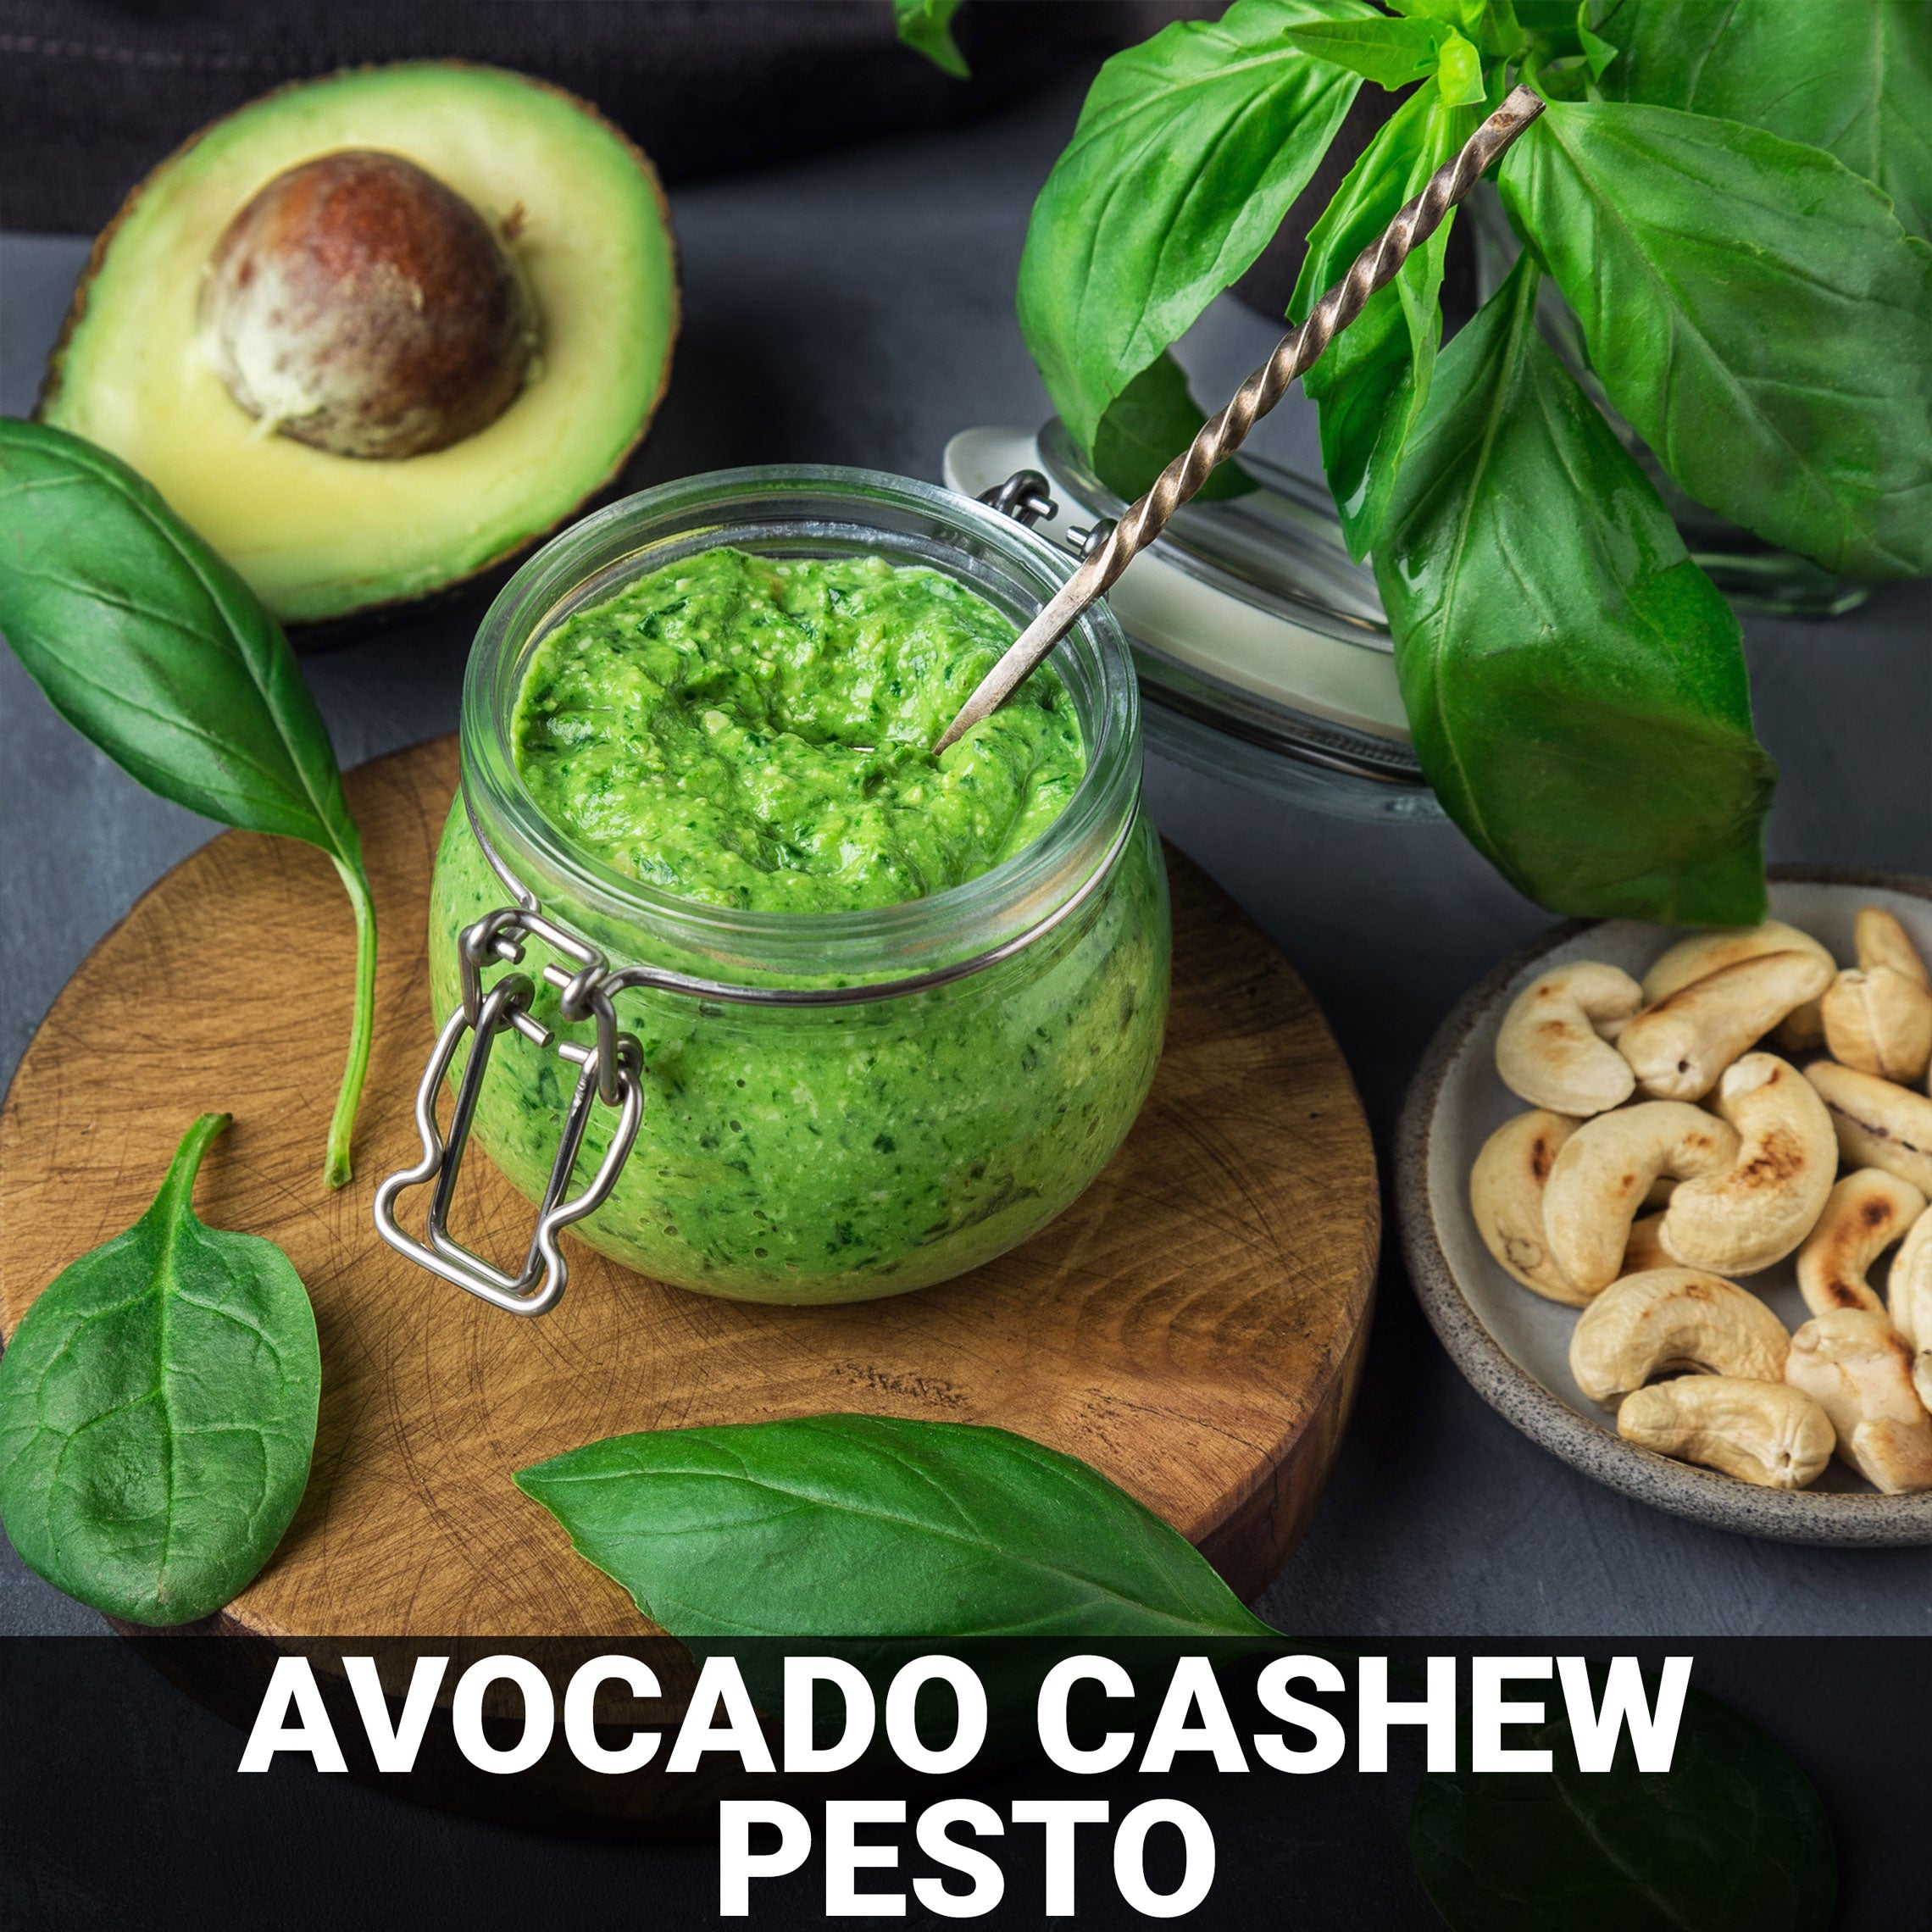 Avocado‐Cashew Pesto Recipe - Foods Alive